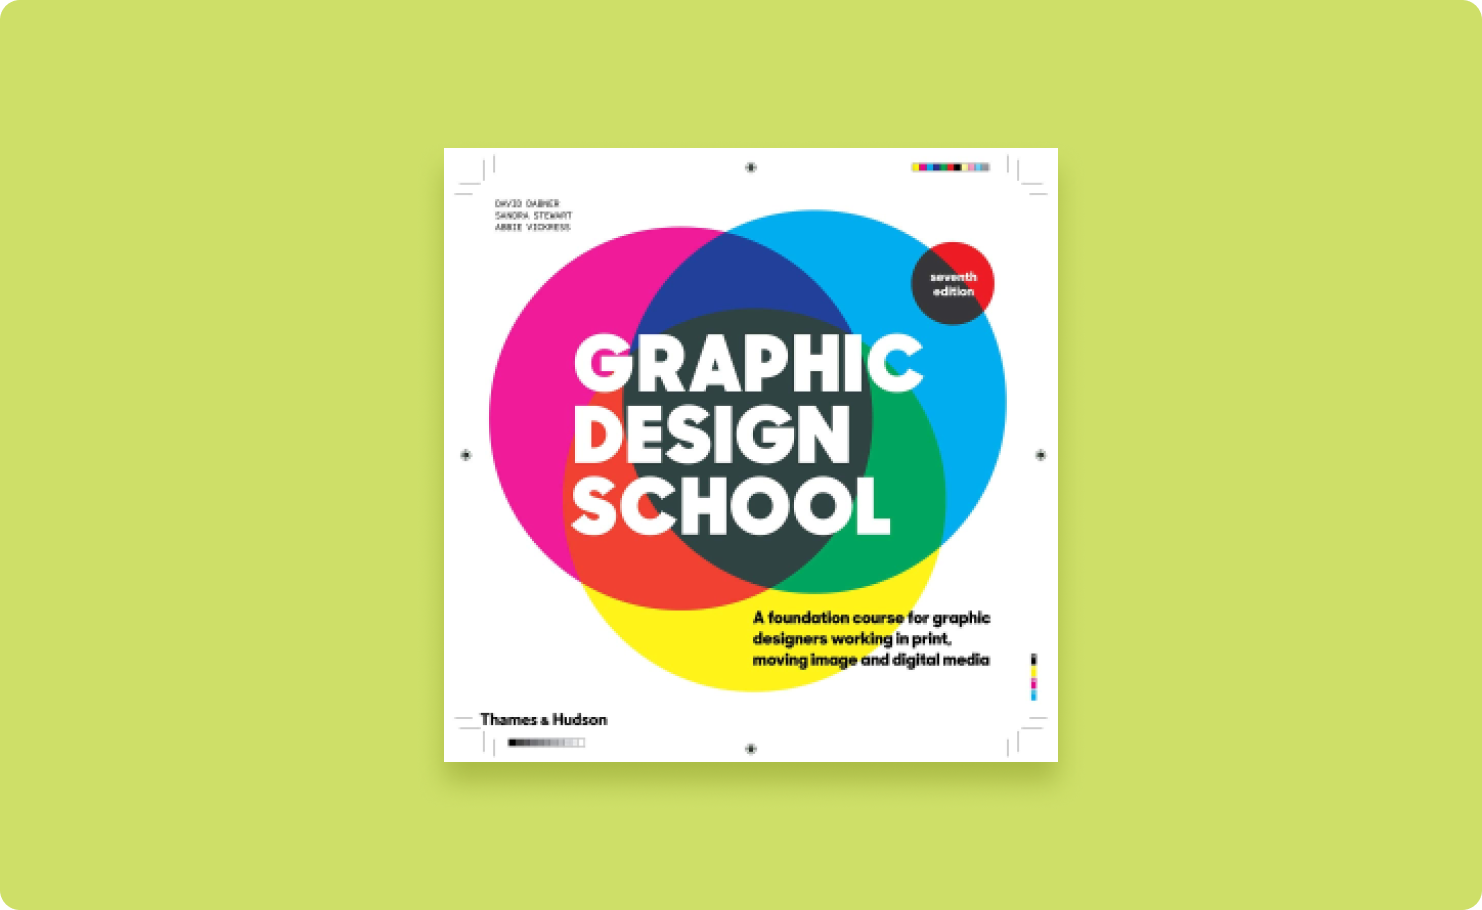 Cover image of the book: Graphic Design School